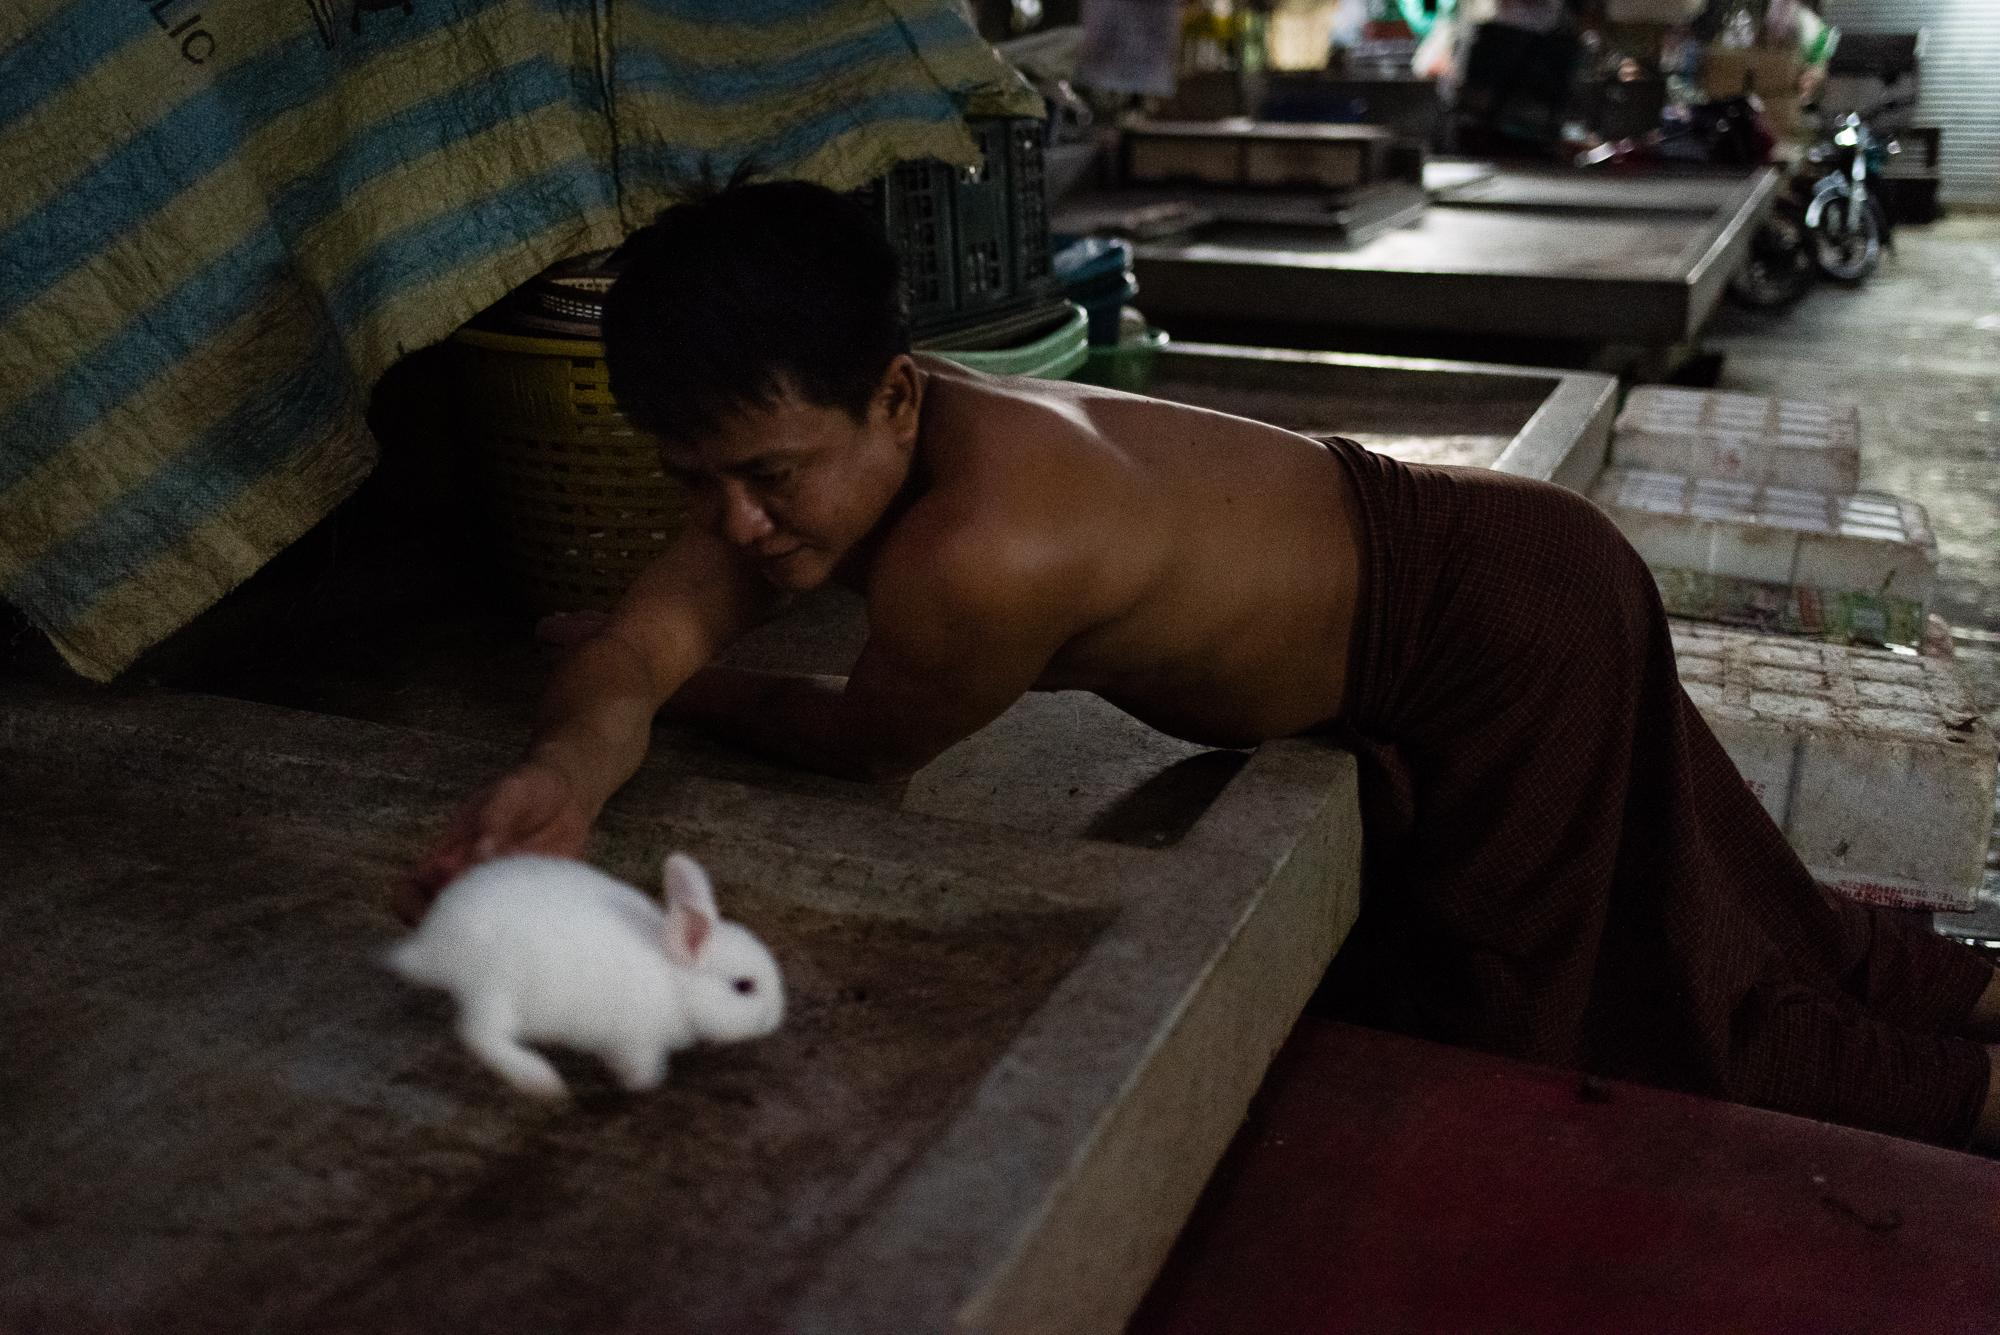 BANGKOK, THAILAND – NOVEMBER 29, 2018: A Burmese worker playing with his pet rabbit after work in the Old Market of Yaowarat. As they live cramped apartments, small pets, such as rabbits, hamsters, goldfish, are popular among Burmese workers.